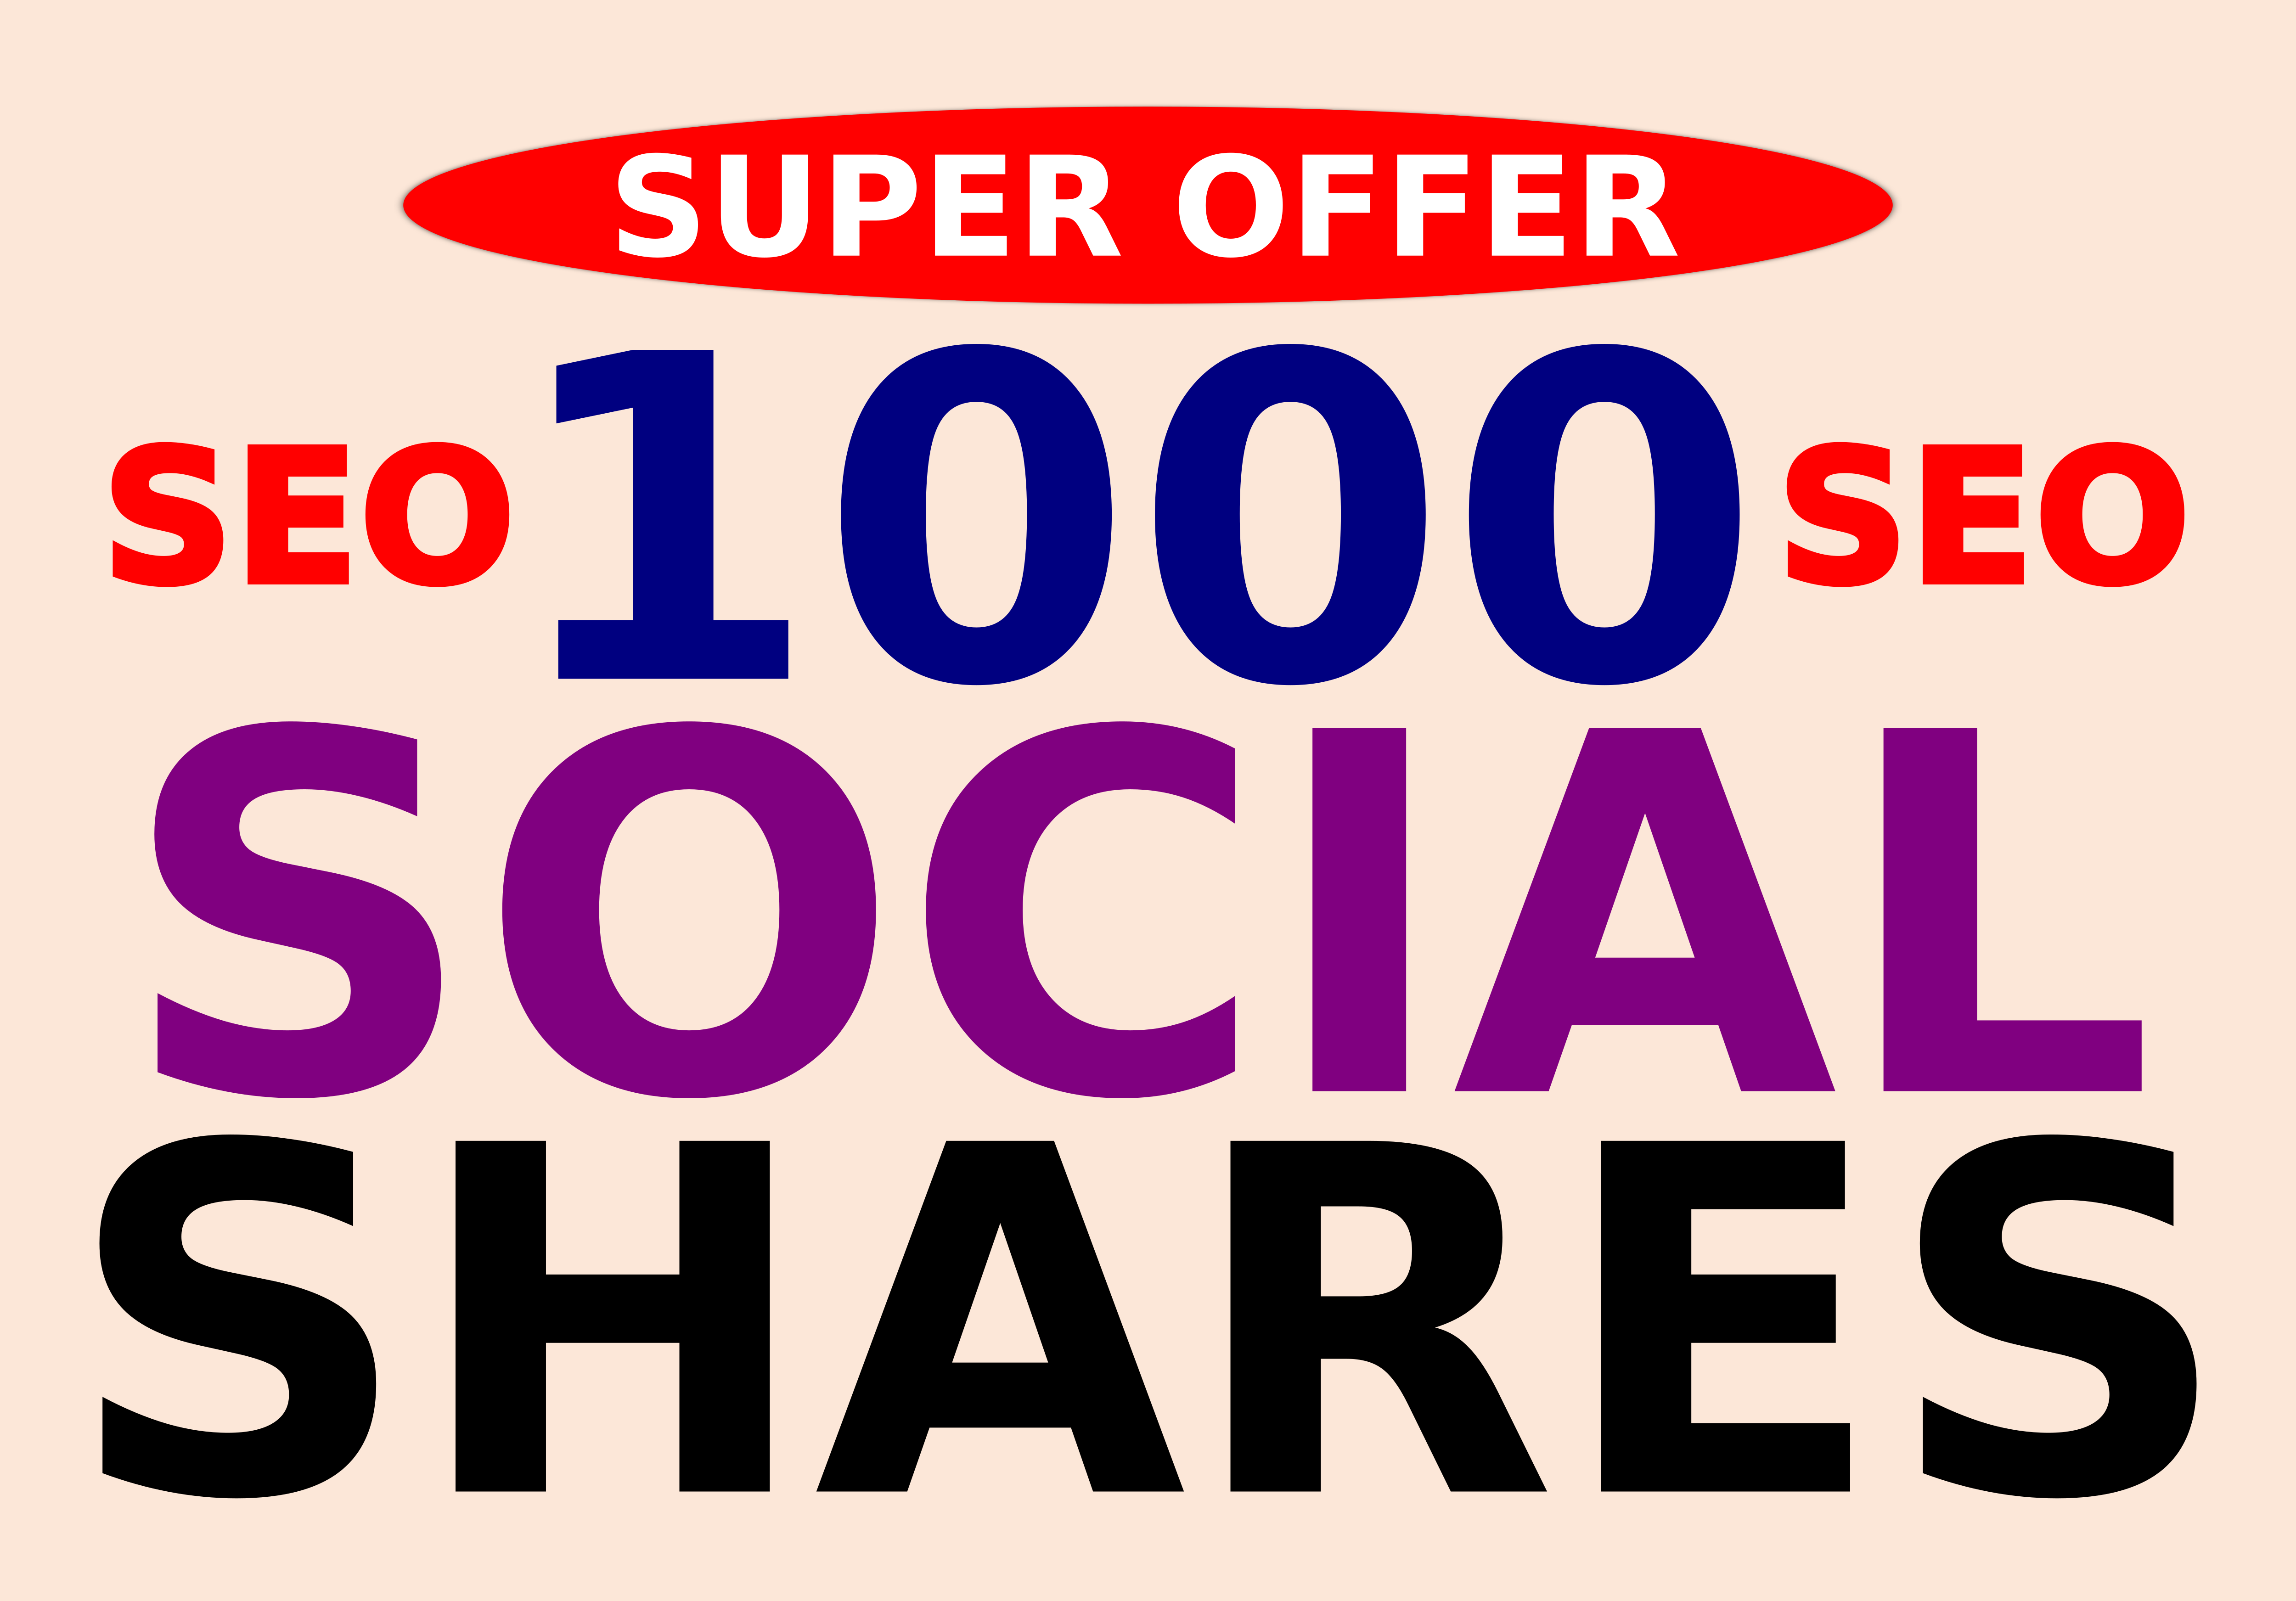 Share your link content on social media